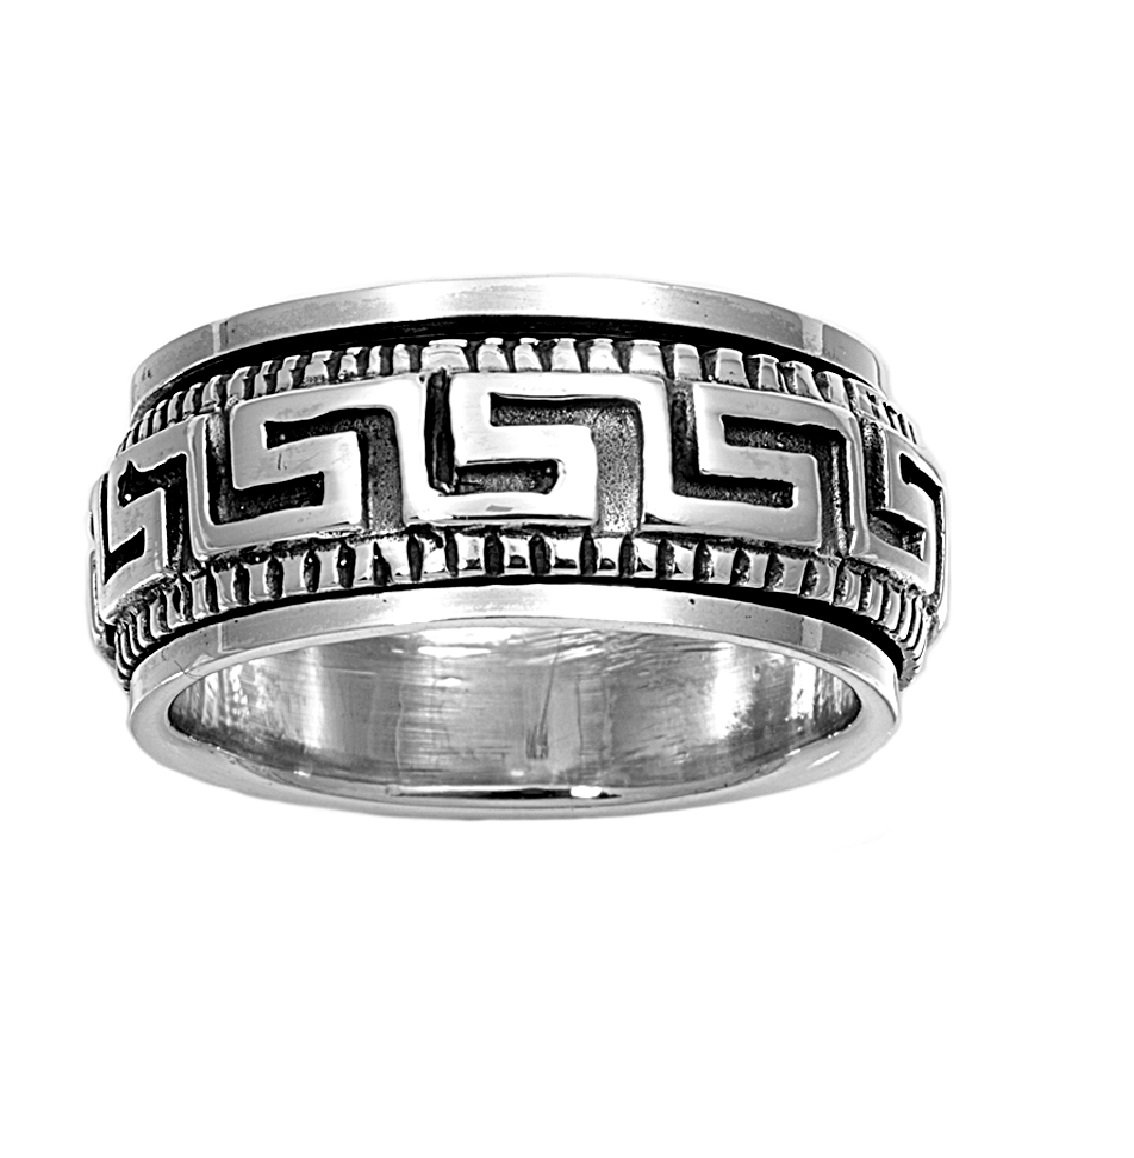 925 Sterling Silver Greek Continuous Spinner Ring Size 11 by Princess Kylie (Image #1)